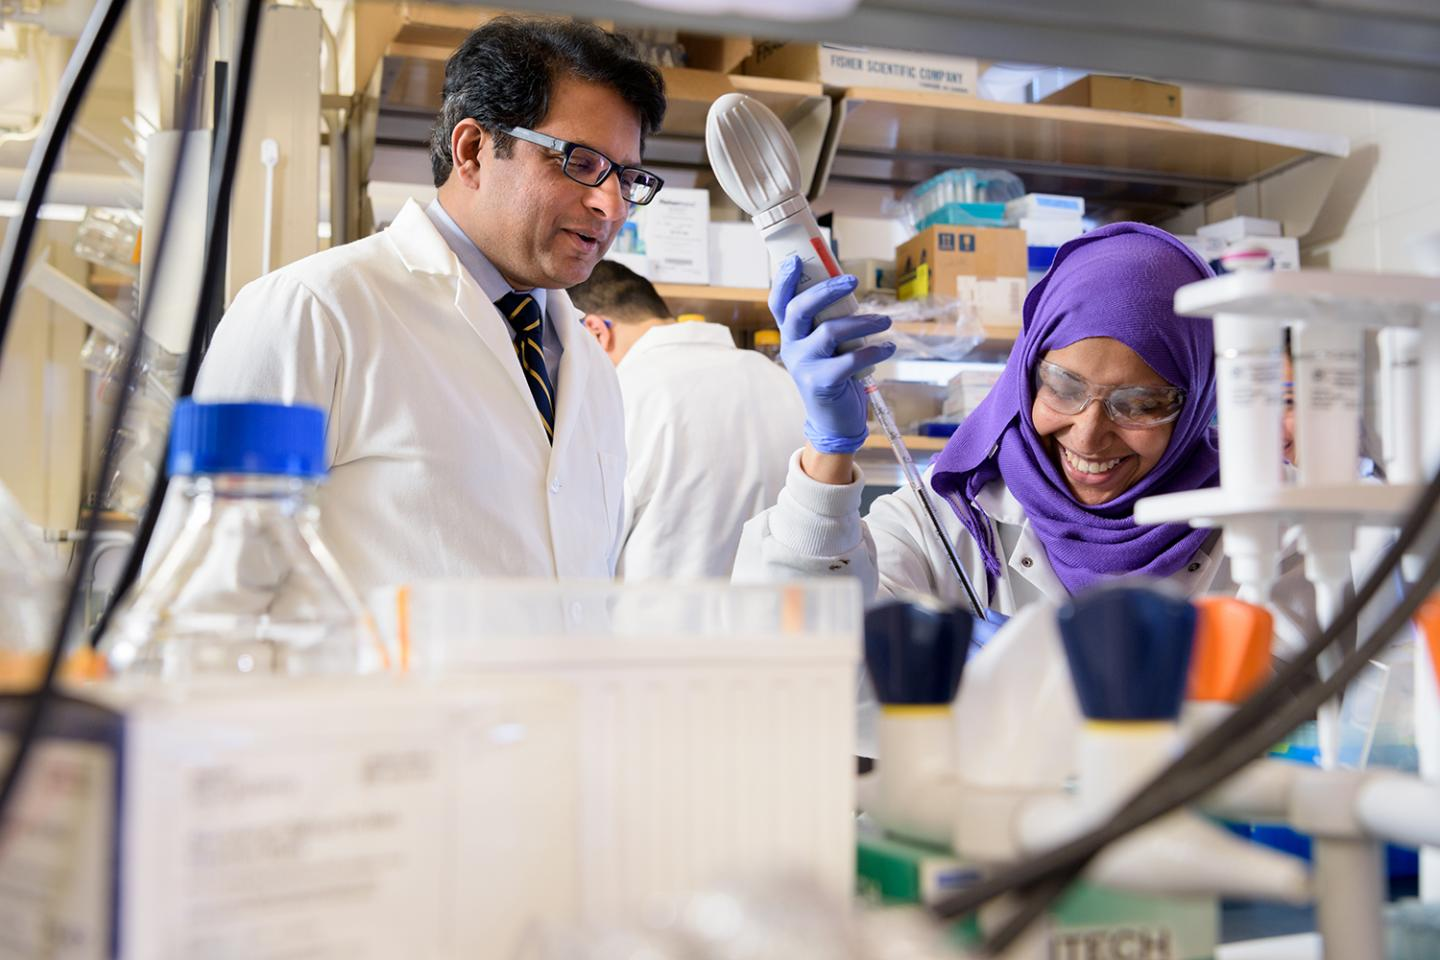 University of Delaware biologist Salil Lachke's research focuses on eye lens development. Here, he works in the lab with graduate student Salma Alsaai. / Credit: University of Delaware/ Evan Krape